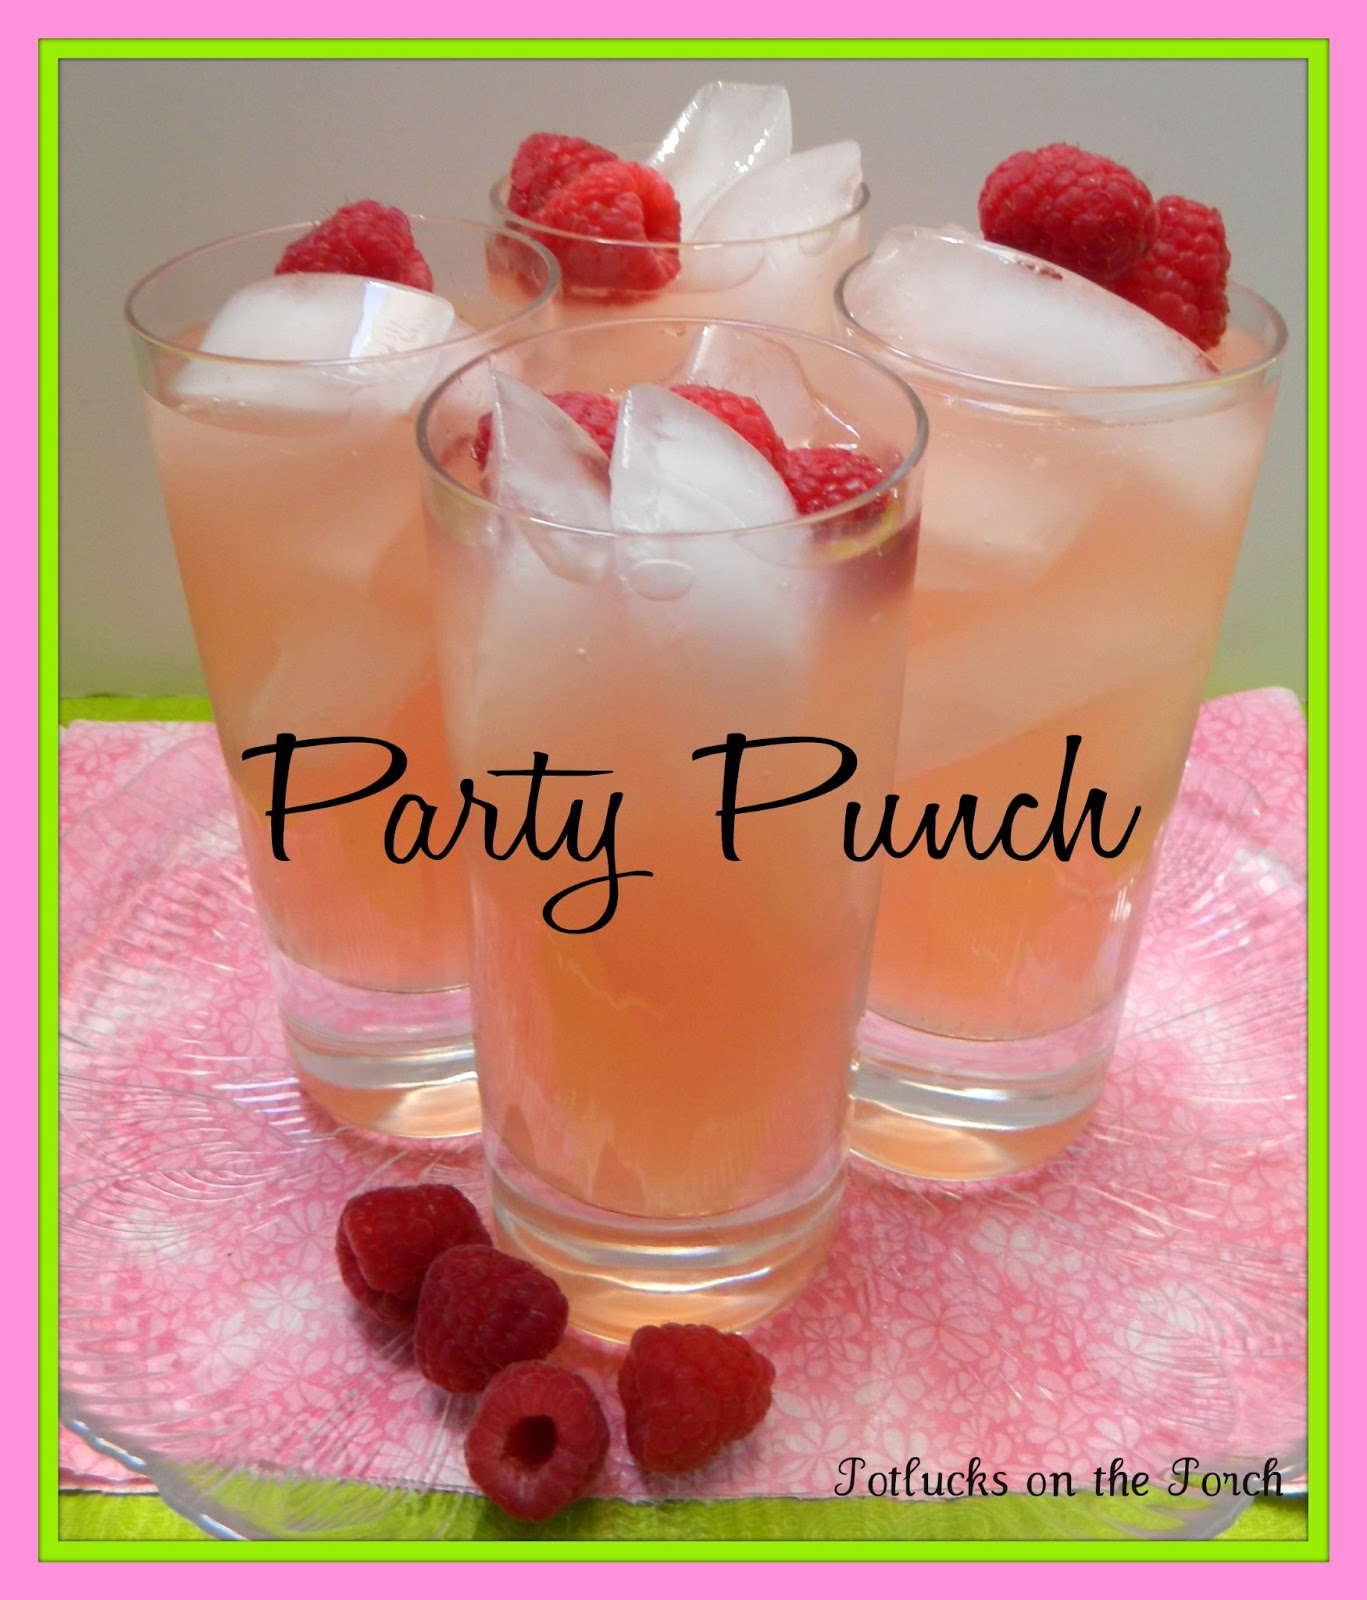 Sugar Free Punch For Baby Shower: Potlucks On The Porch: A Perfect Party Punch